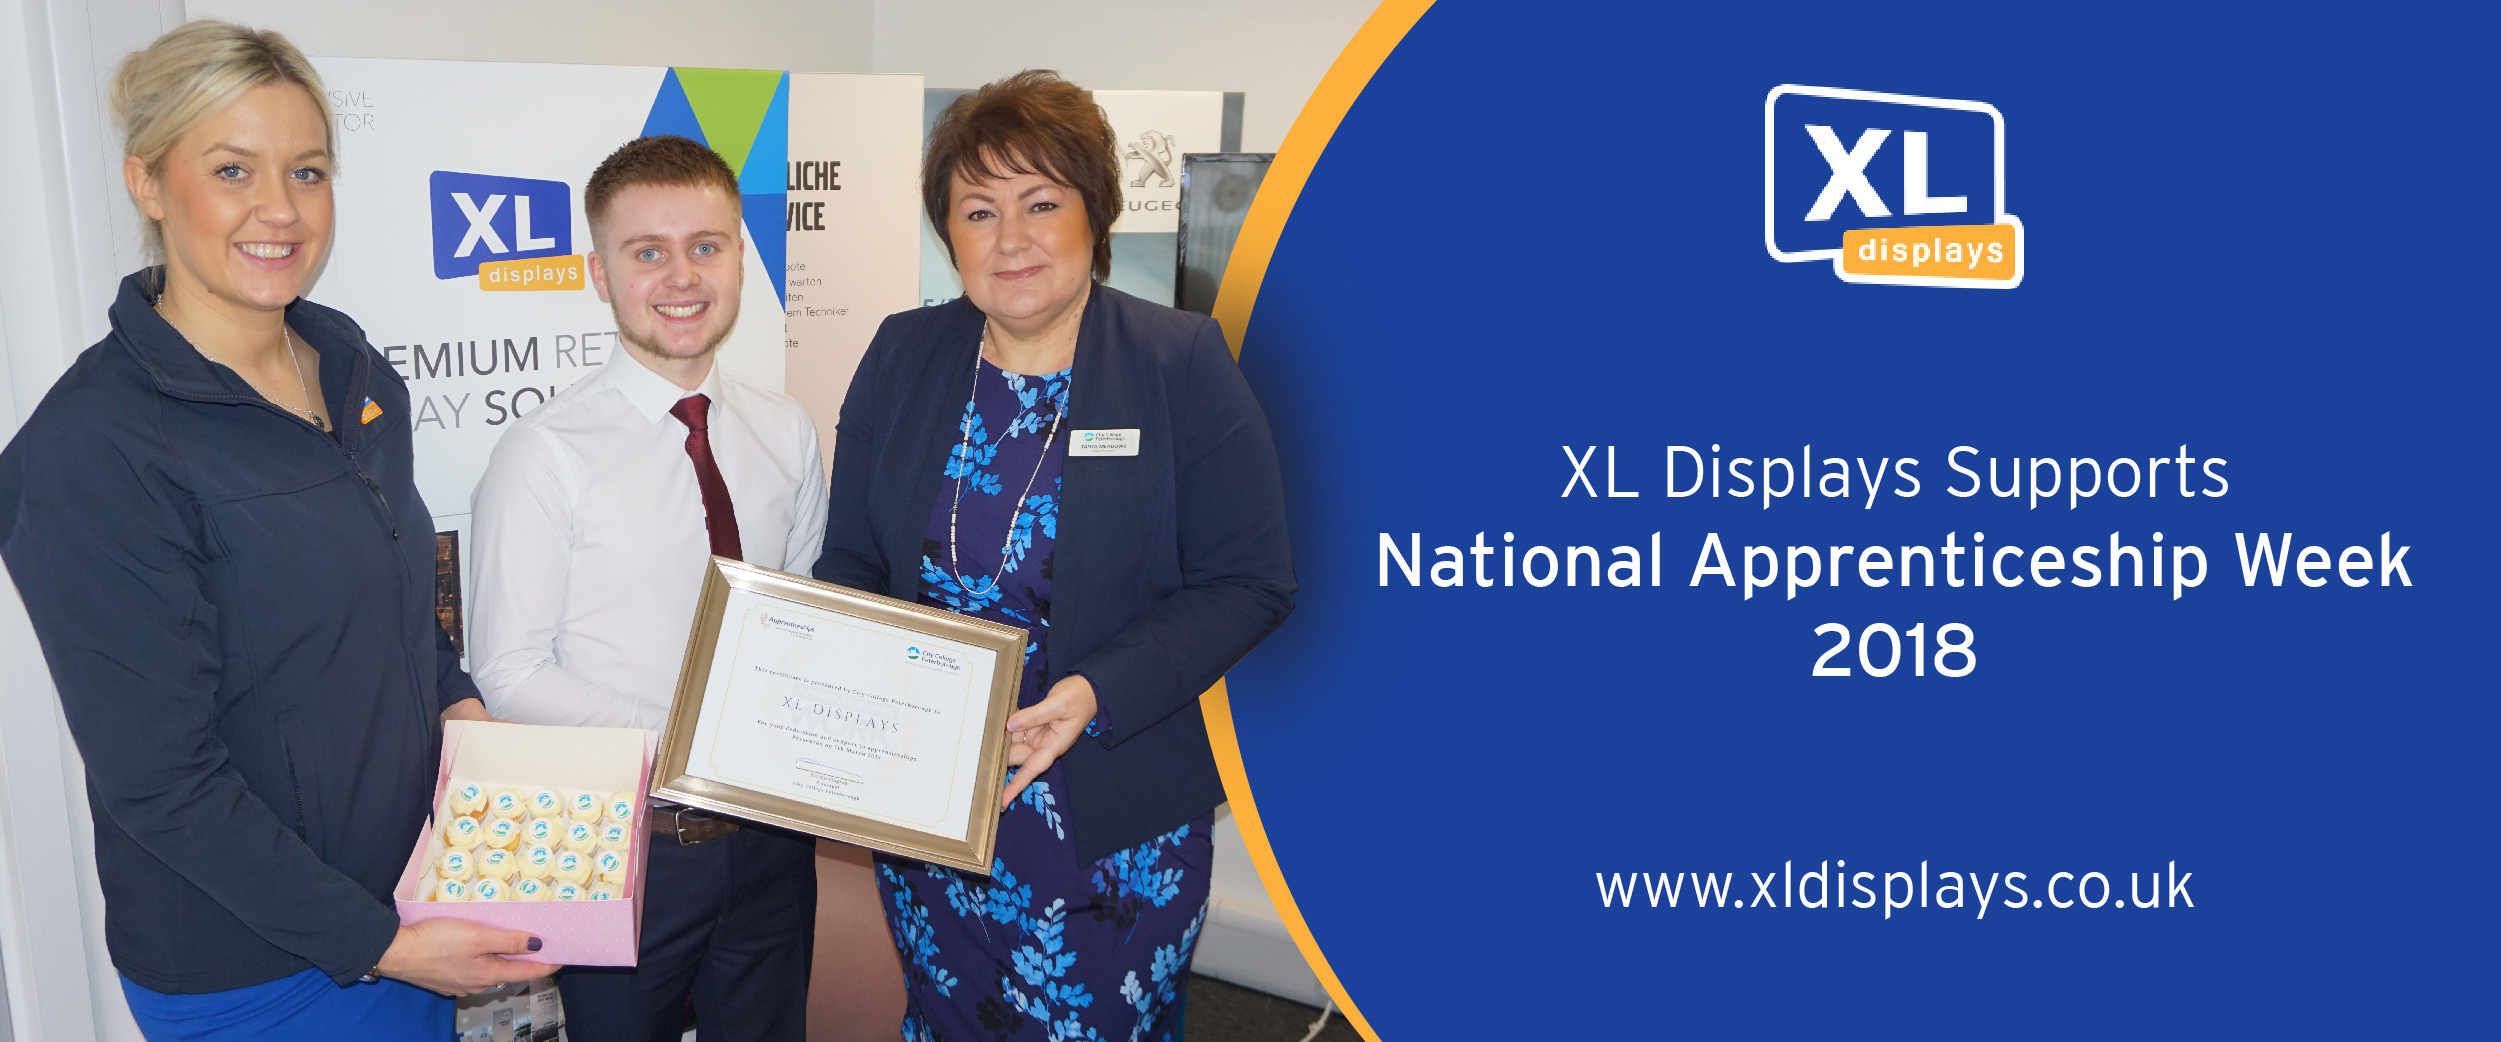 XL Displays Supports National Apprenticeship Week 2018